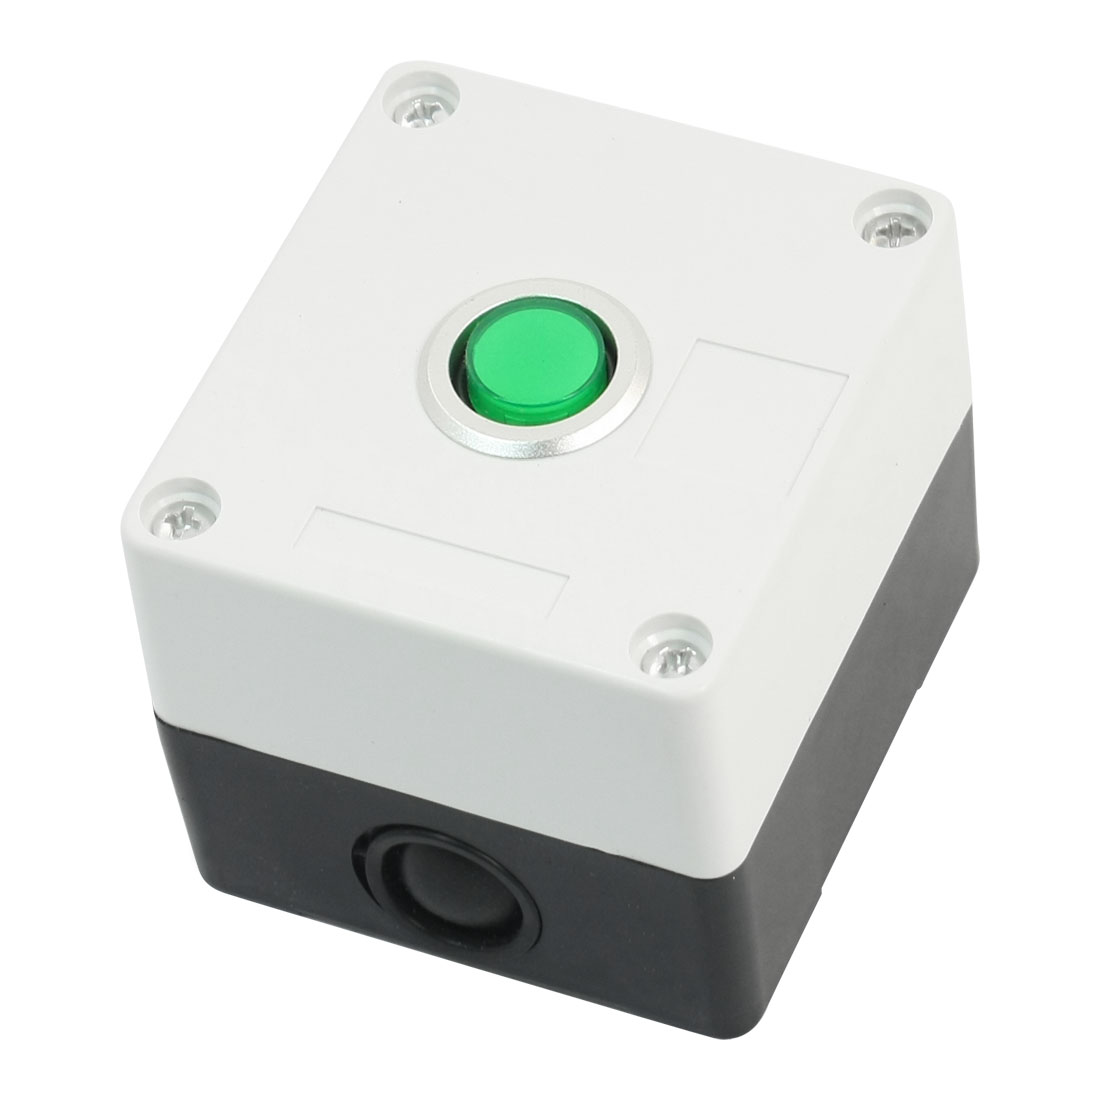 AC 220V 5A Green Light SPDT 1NO 1NC 5-Pin 1NO 1NC Latching Actuator Rectangle Plastic Case Push Button Switch Station Box